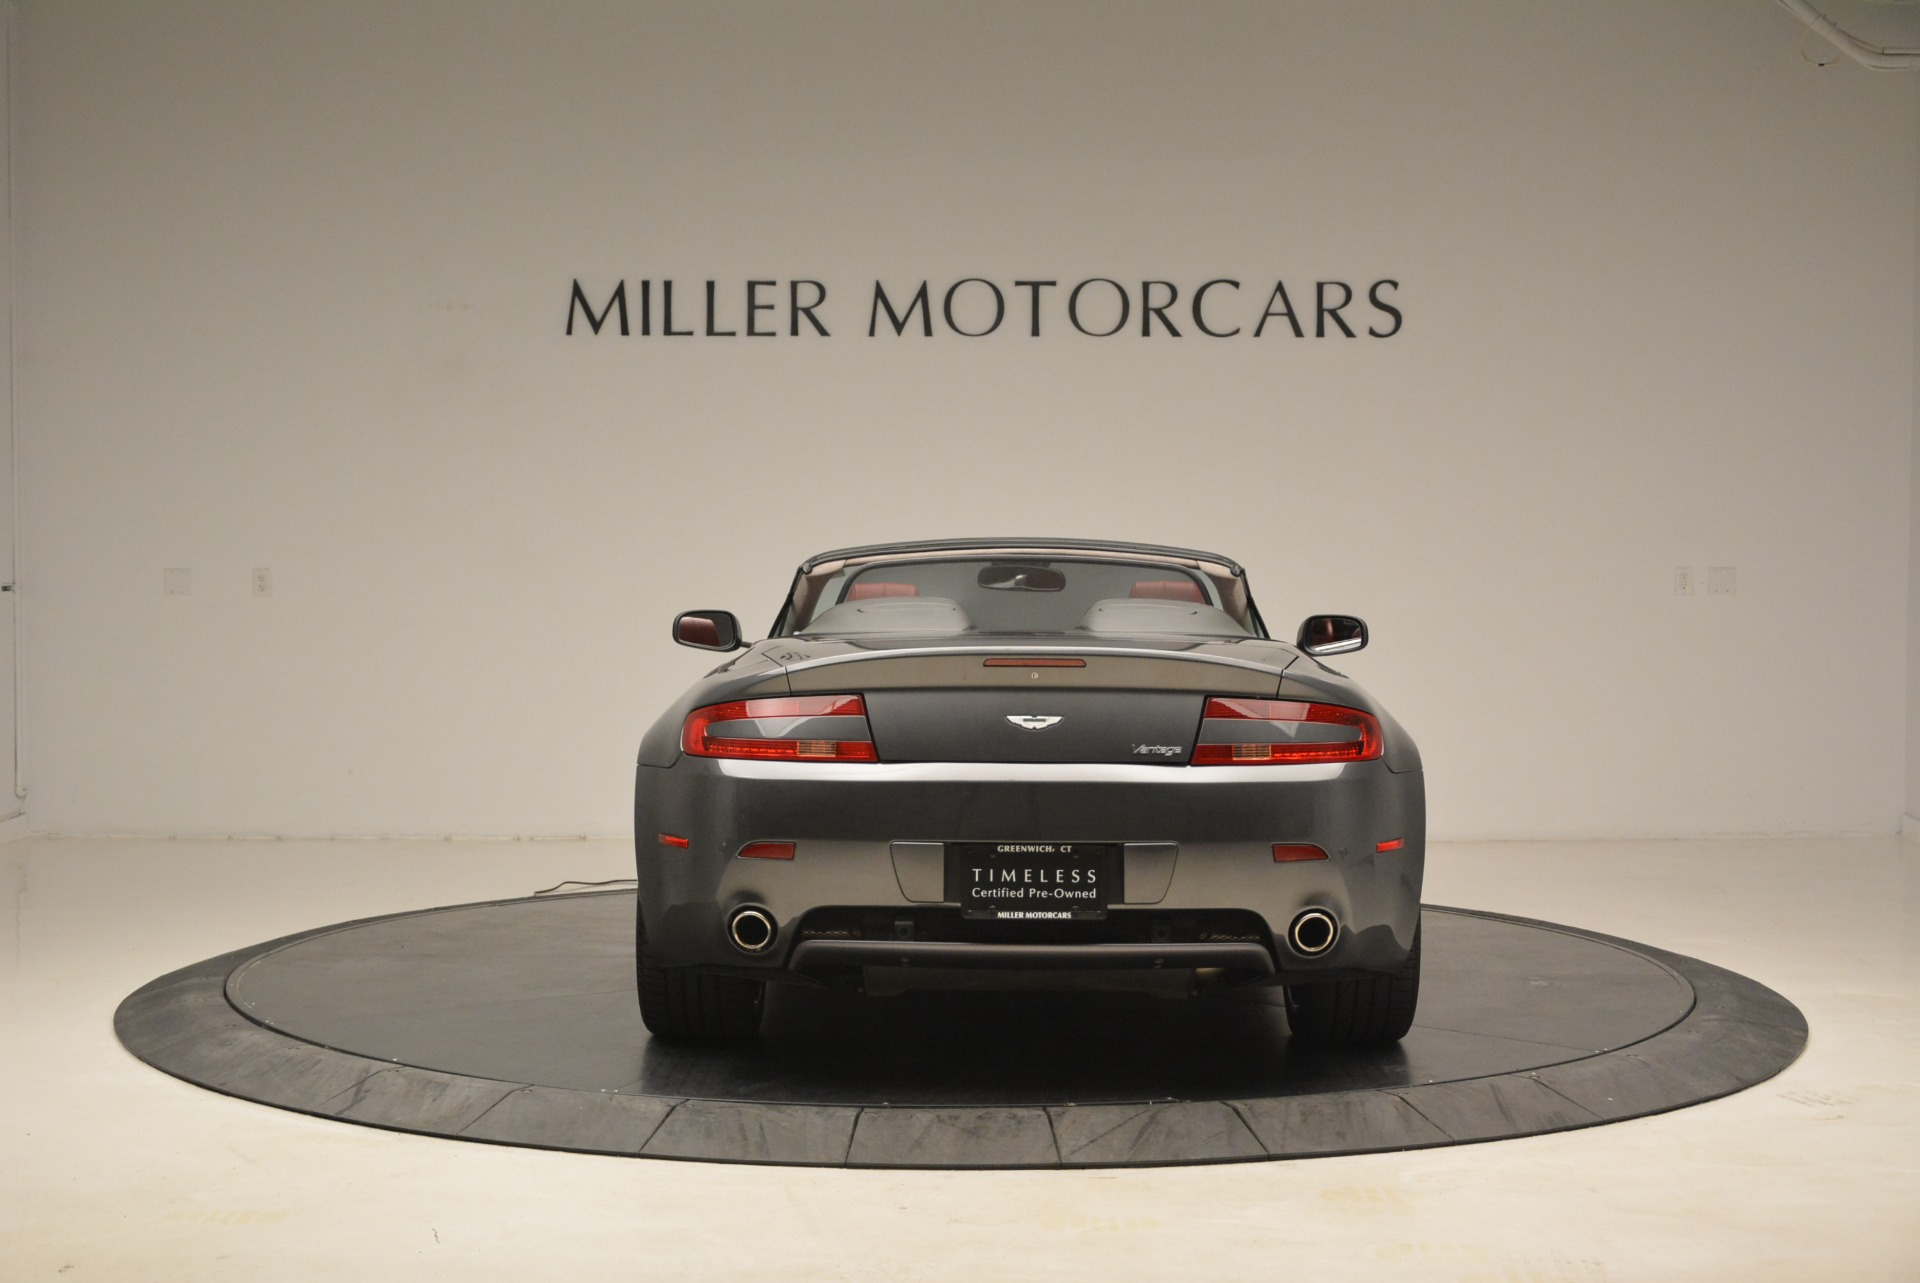 Used 2009 Aston Martin V8 Vantage Roadster For Sale In Westport, CT 2123_p6